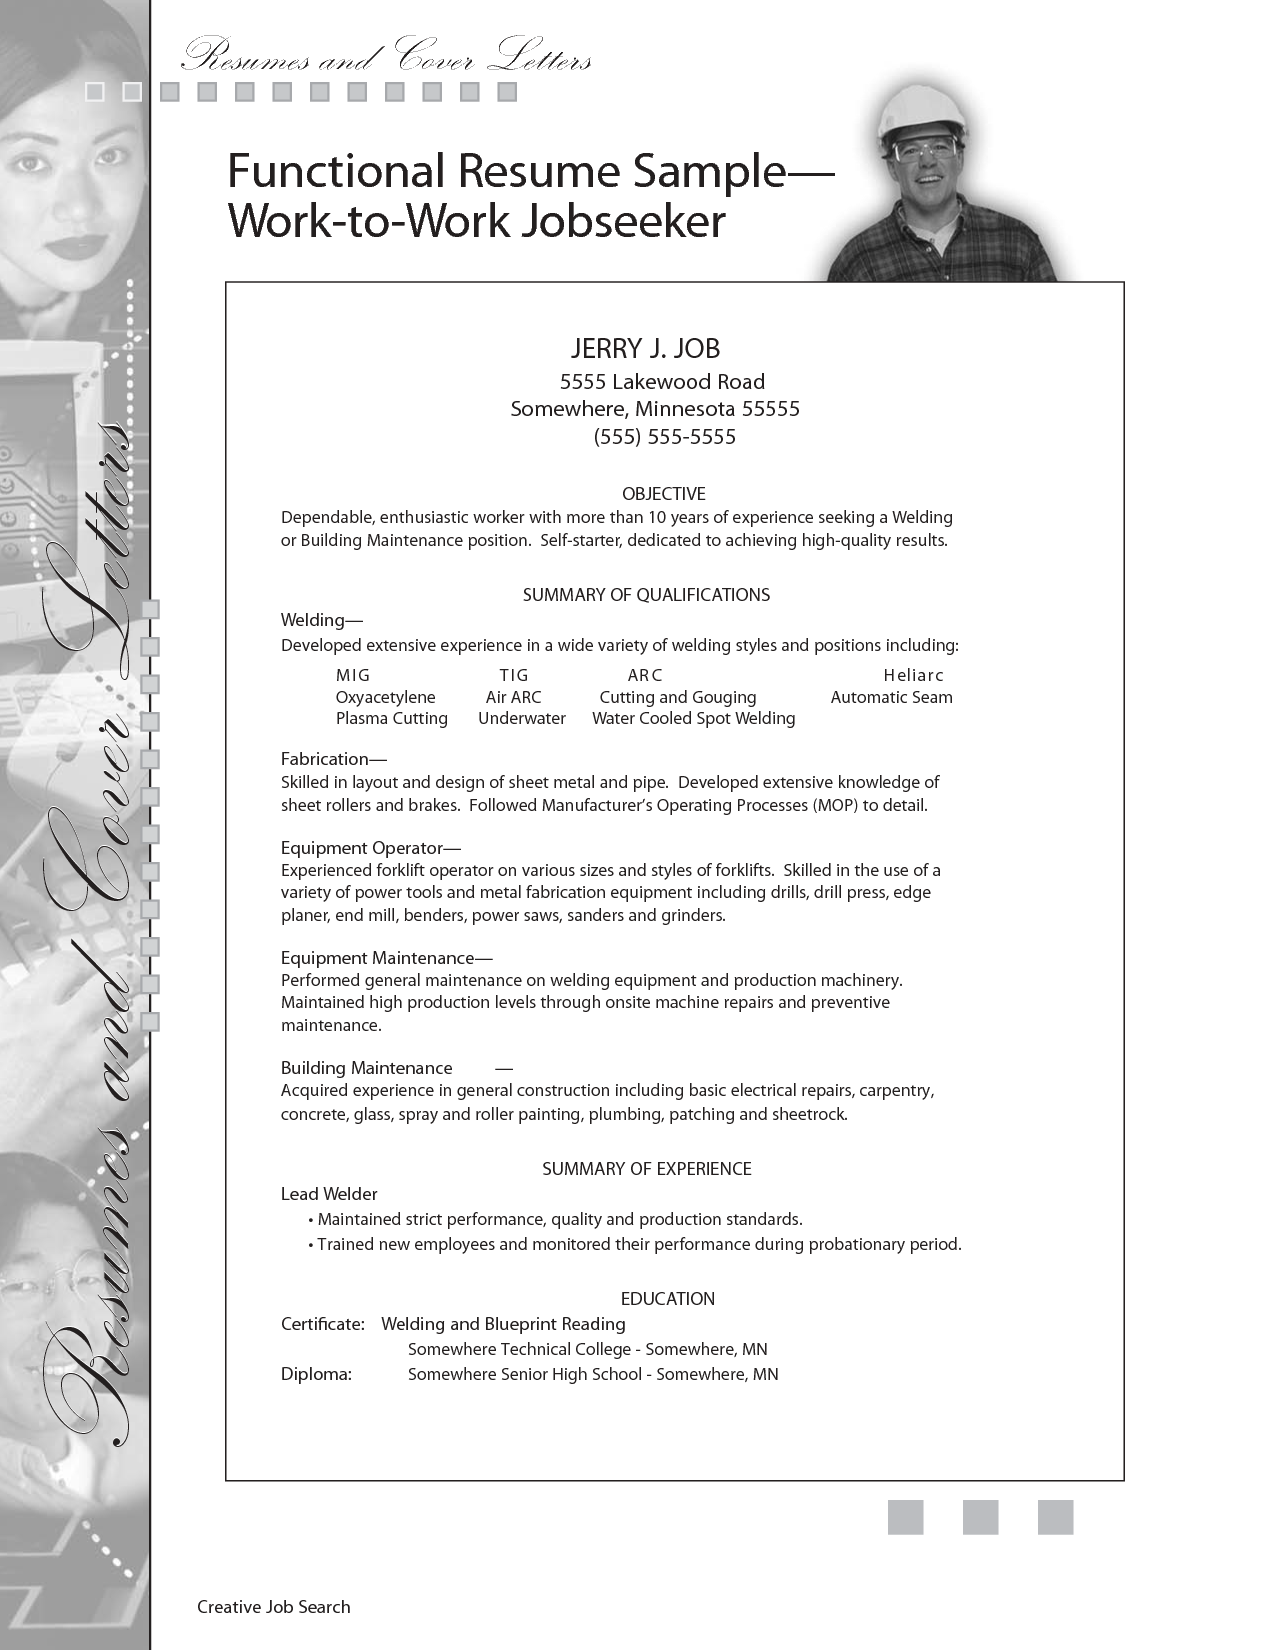 Resume Builder Uga Sample Resume For Welding Position  Sample Building Maintenance